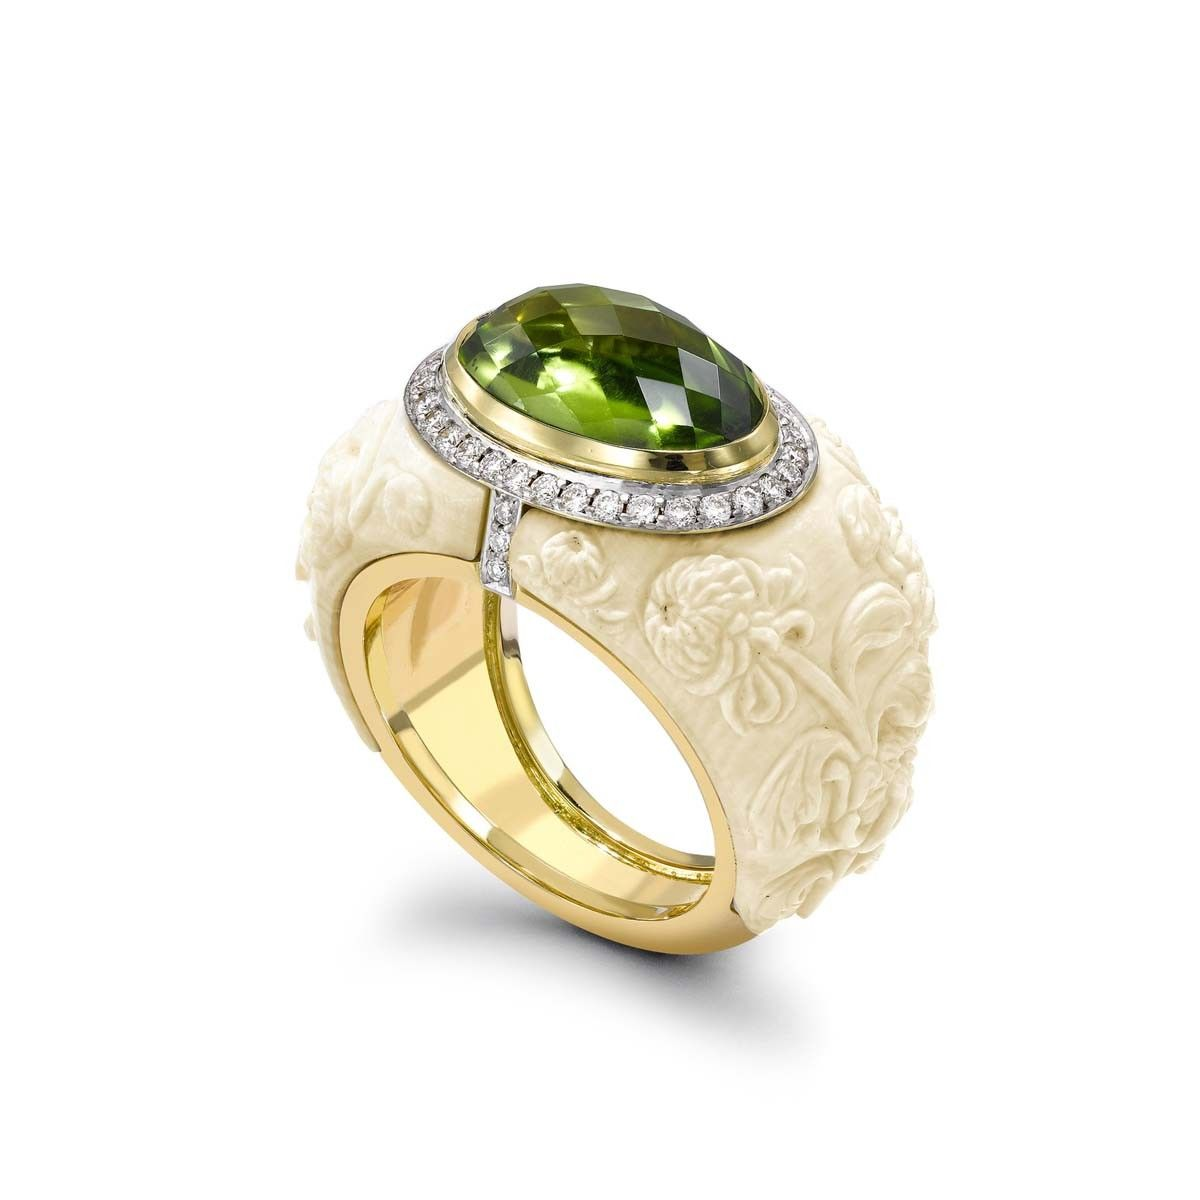 Peridot & Carved Mammoth Ivory Ring in 18k yellow gold.